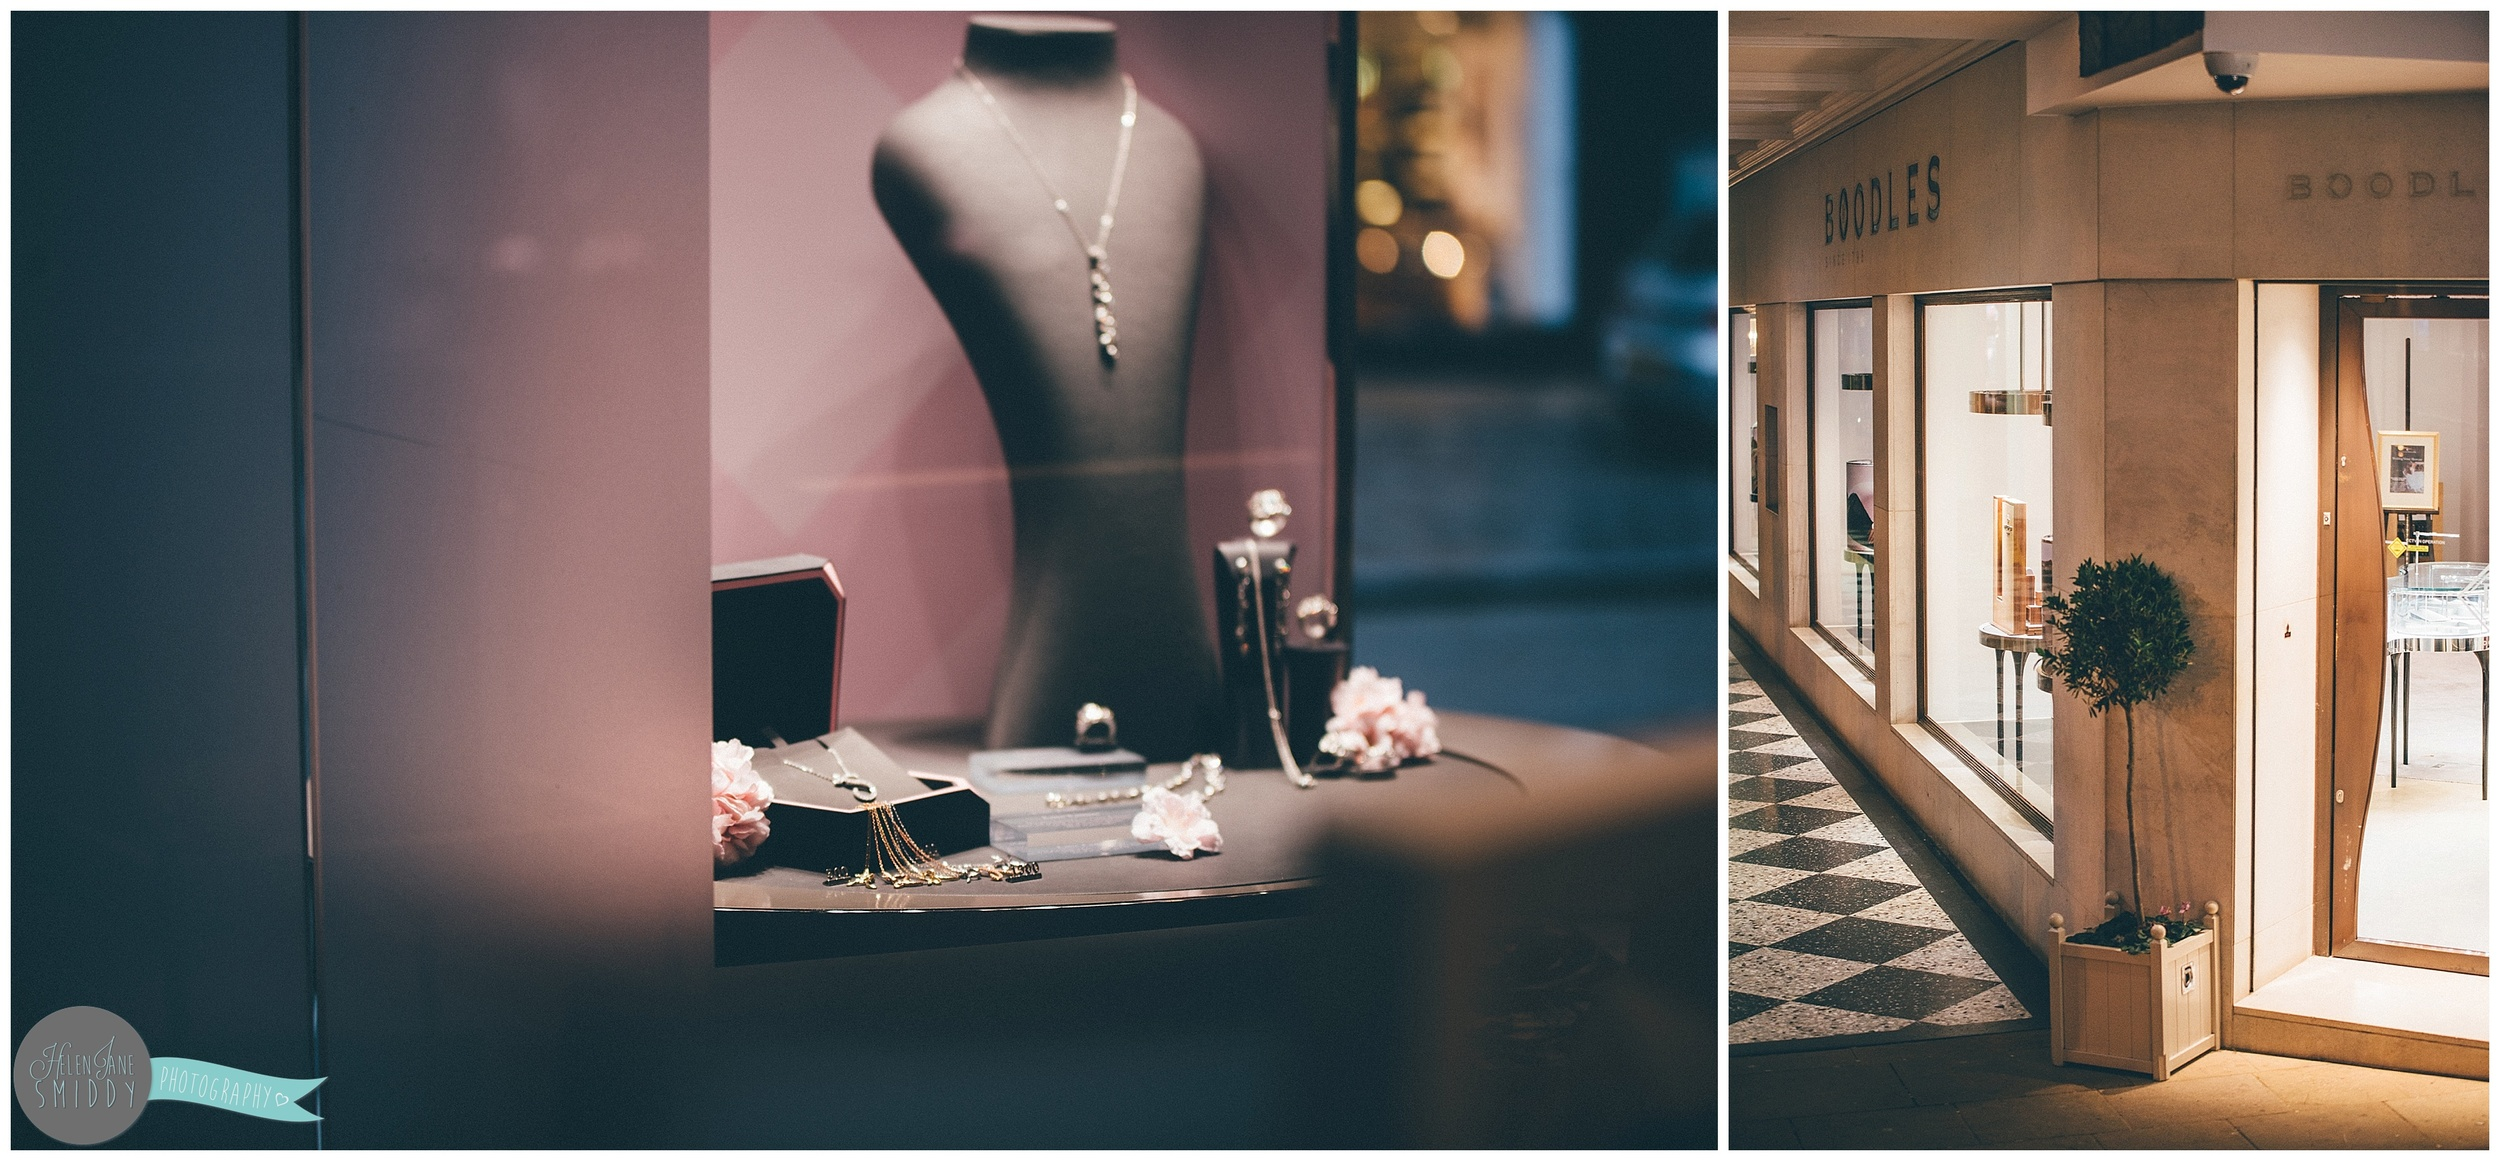 Boodles-engagement-party-wedding-photography-champagne-canapes-chester-cheshire-bespoke-diamonds-luxury-jewellers